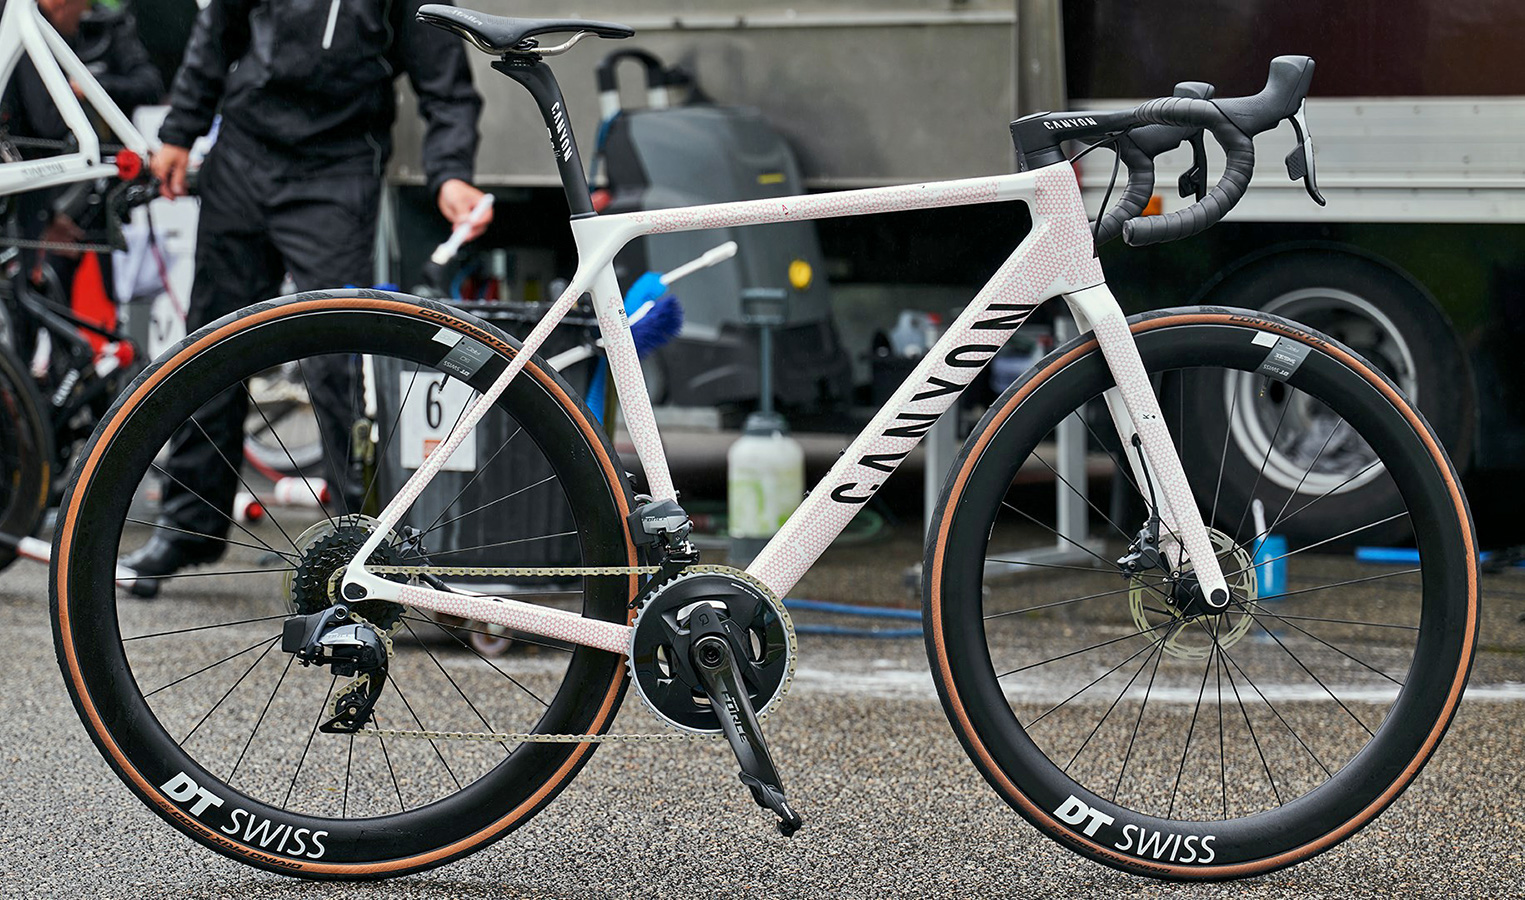 Canyon Ultimate CF SLX 8 Disc TDF limited edition carbon road bike, photo by Tino Pohlman, 108th Tour de France